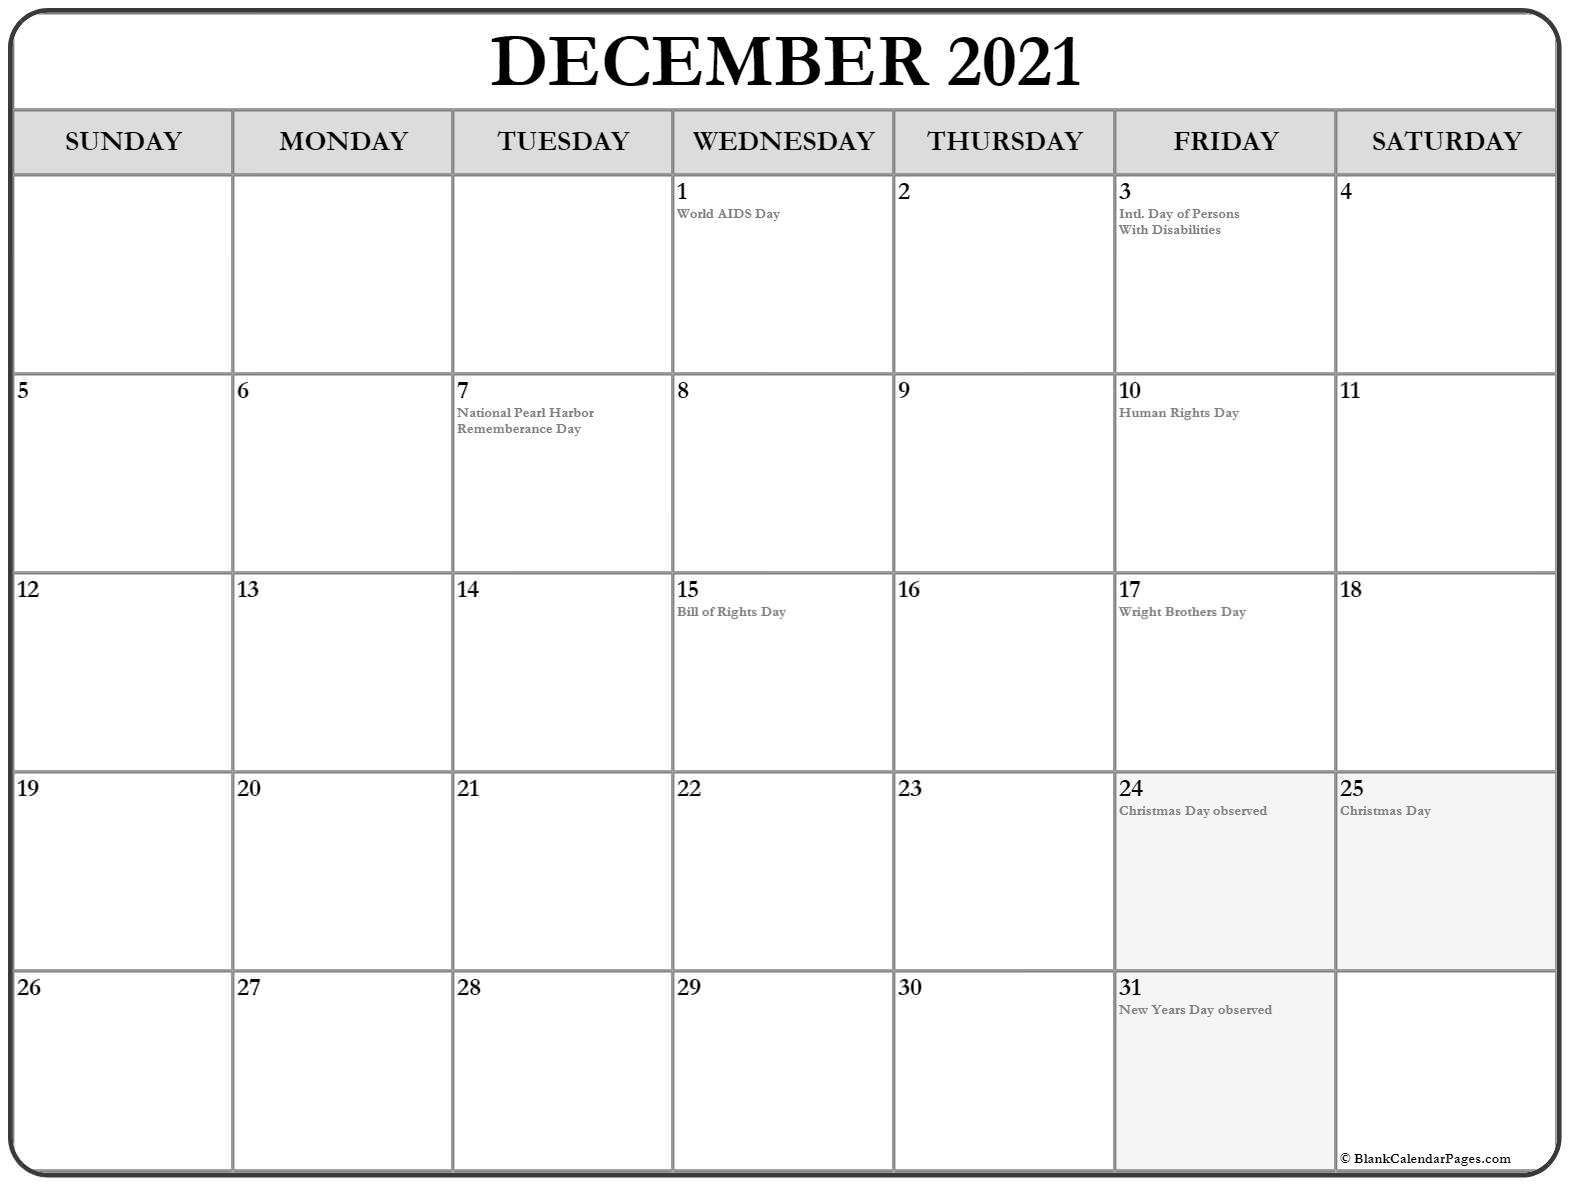 December 2021 USA holiday calendar. Incluides US federal holidays and observations